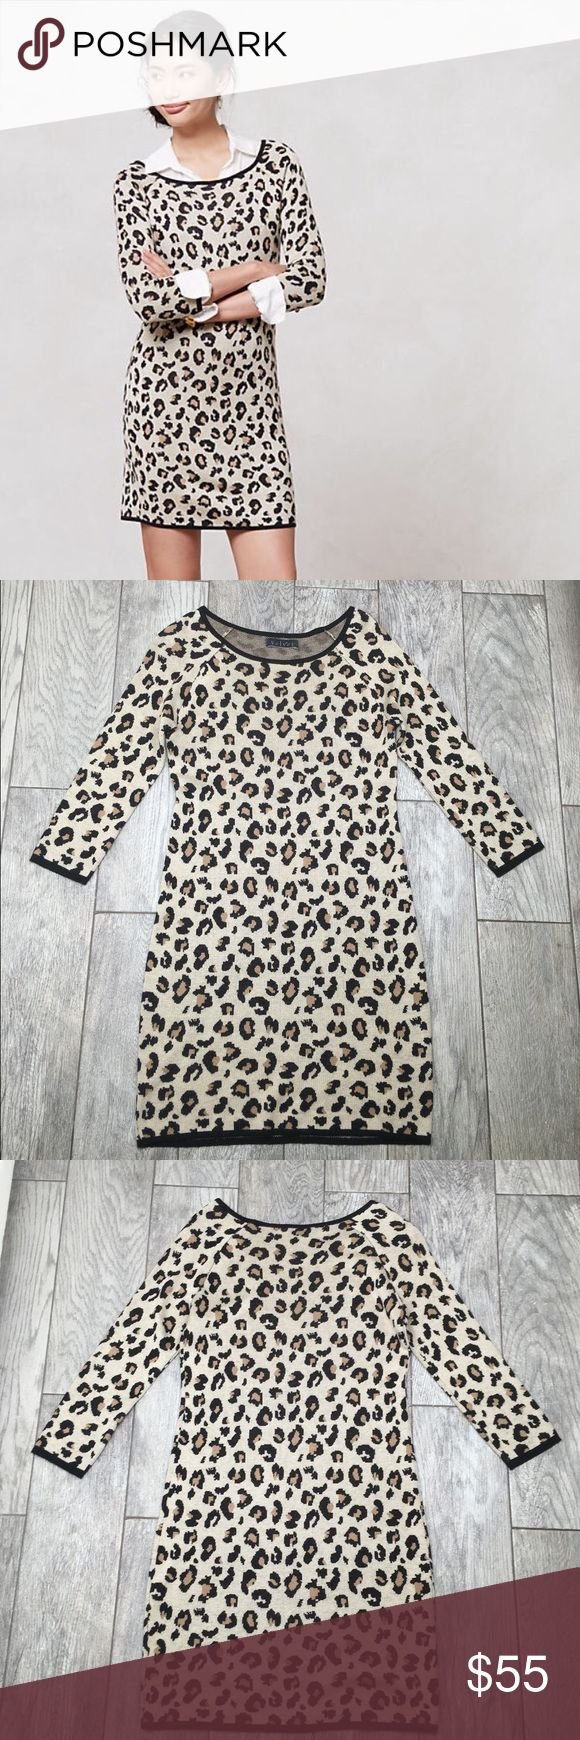 Anthropologie Velvet Leopardo sweater dress S Anthropologie Velvet brand Leopardo sweater dress. Cute and stylish leopard print. Super soft!! Pullover style, 3/4 sleeve. Really cute with a white collared shirt underneath as seen in model pic, or pair with booties! EUC- no flaws. Size small Anthropologie Dresses